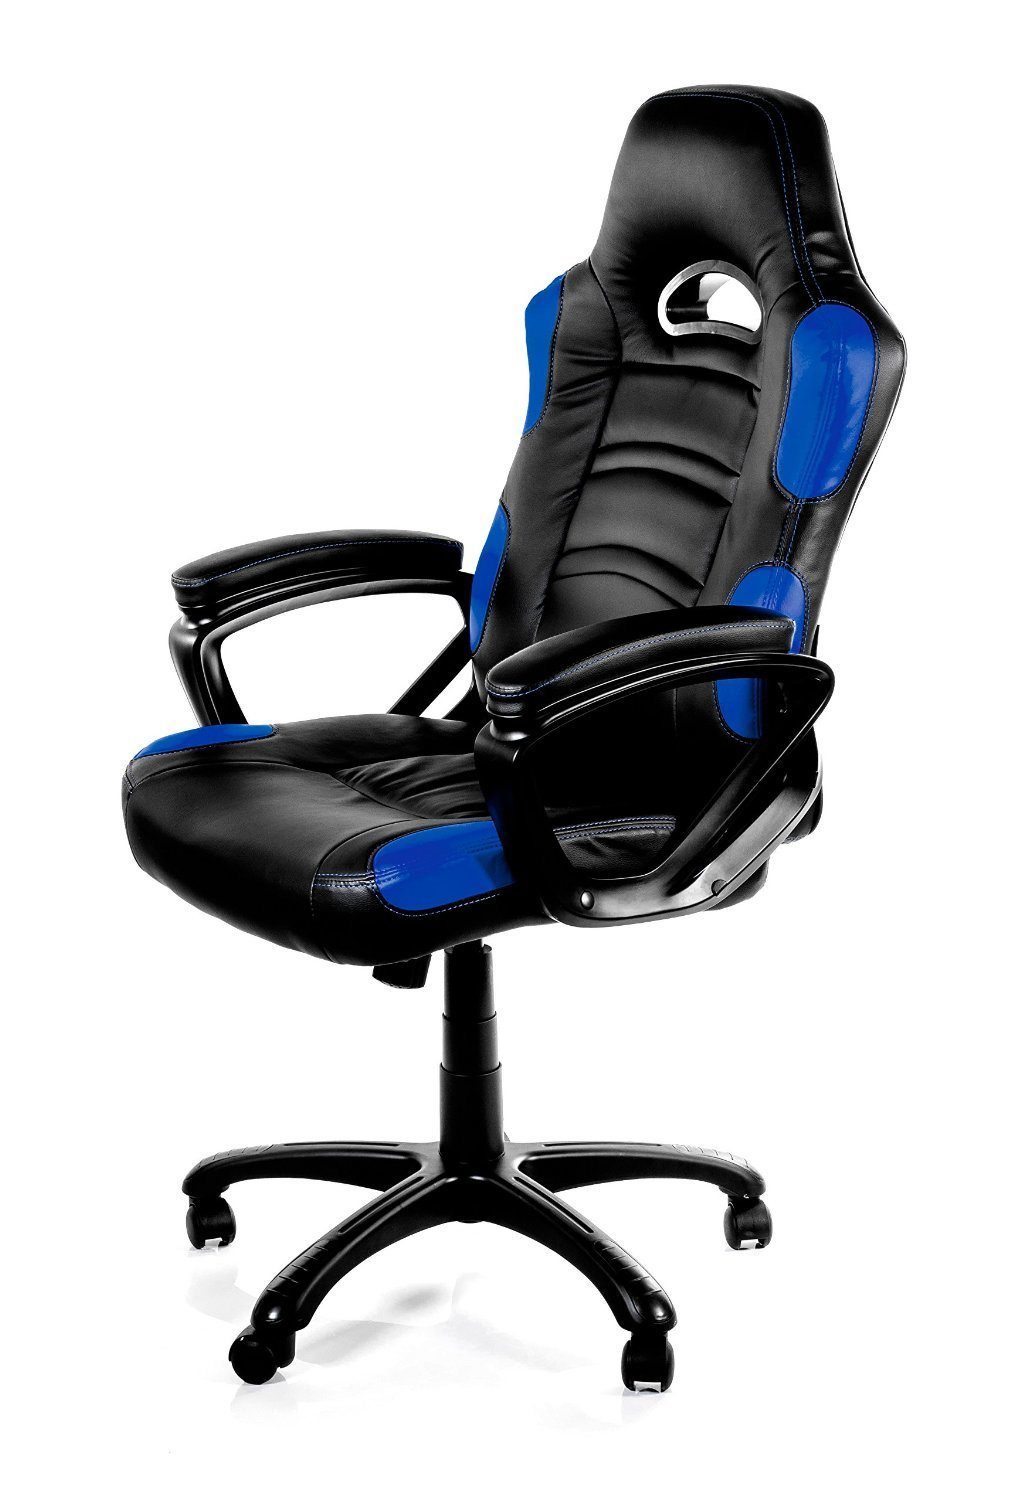 best chair for pc gaming 2016 covers rental okc so they need a good that contains angle their bones and head office chairs under 200